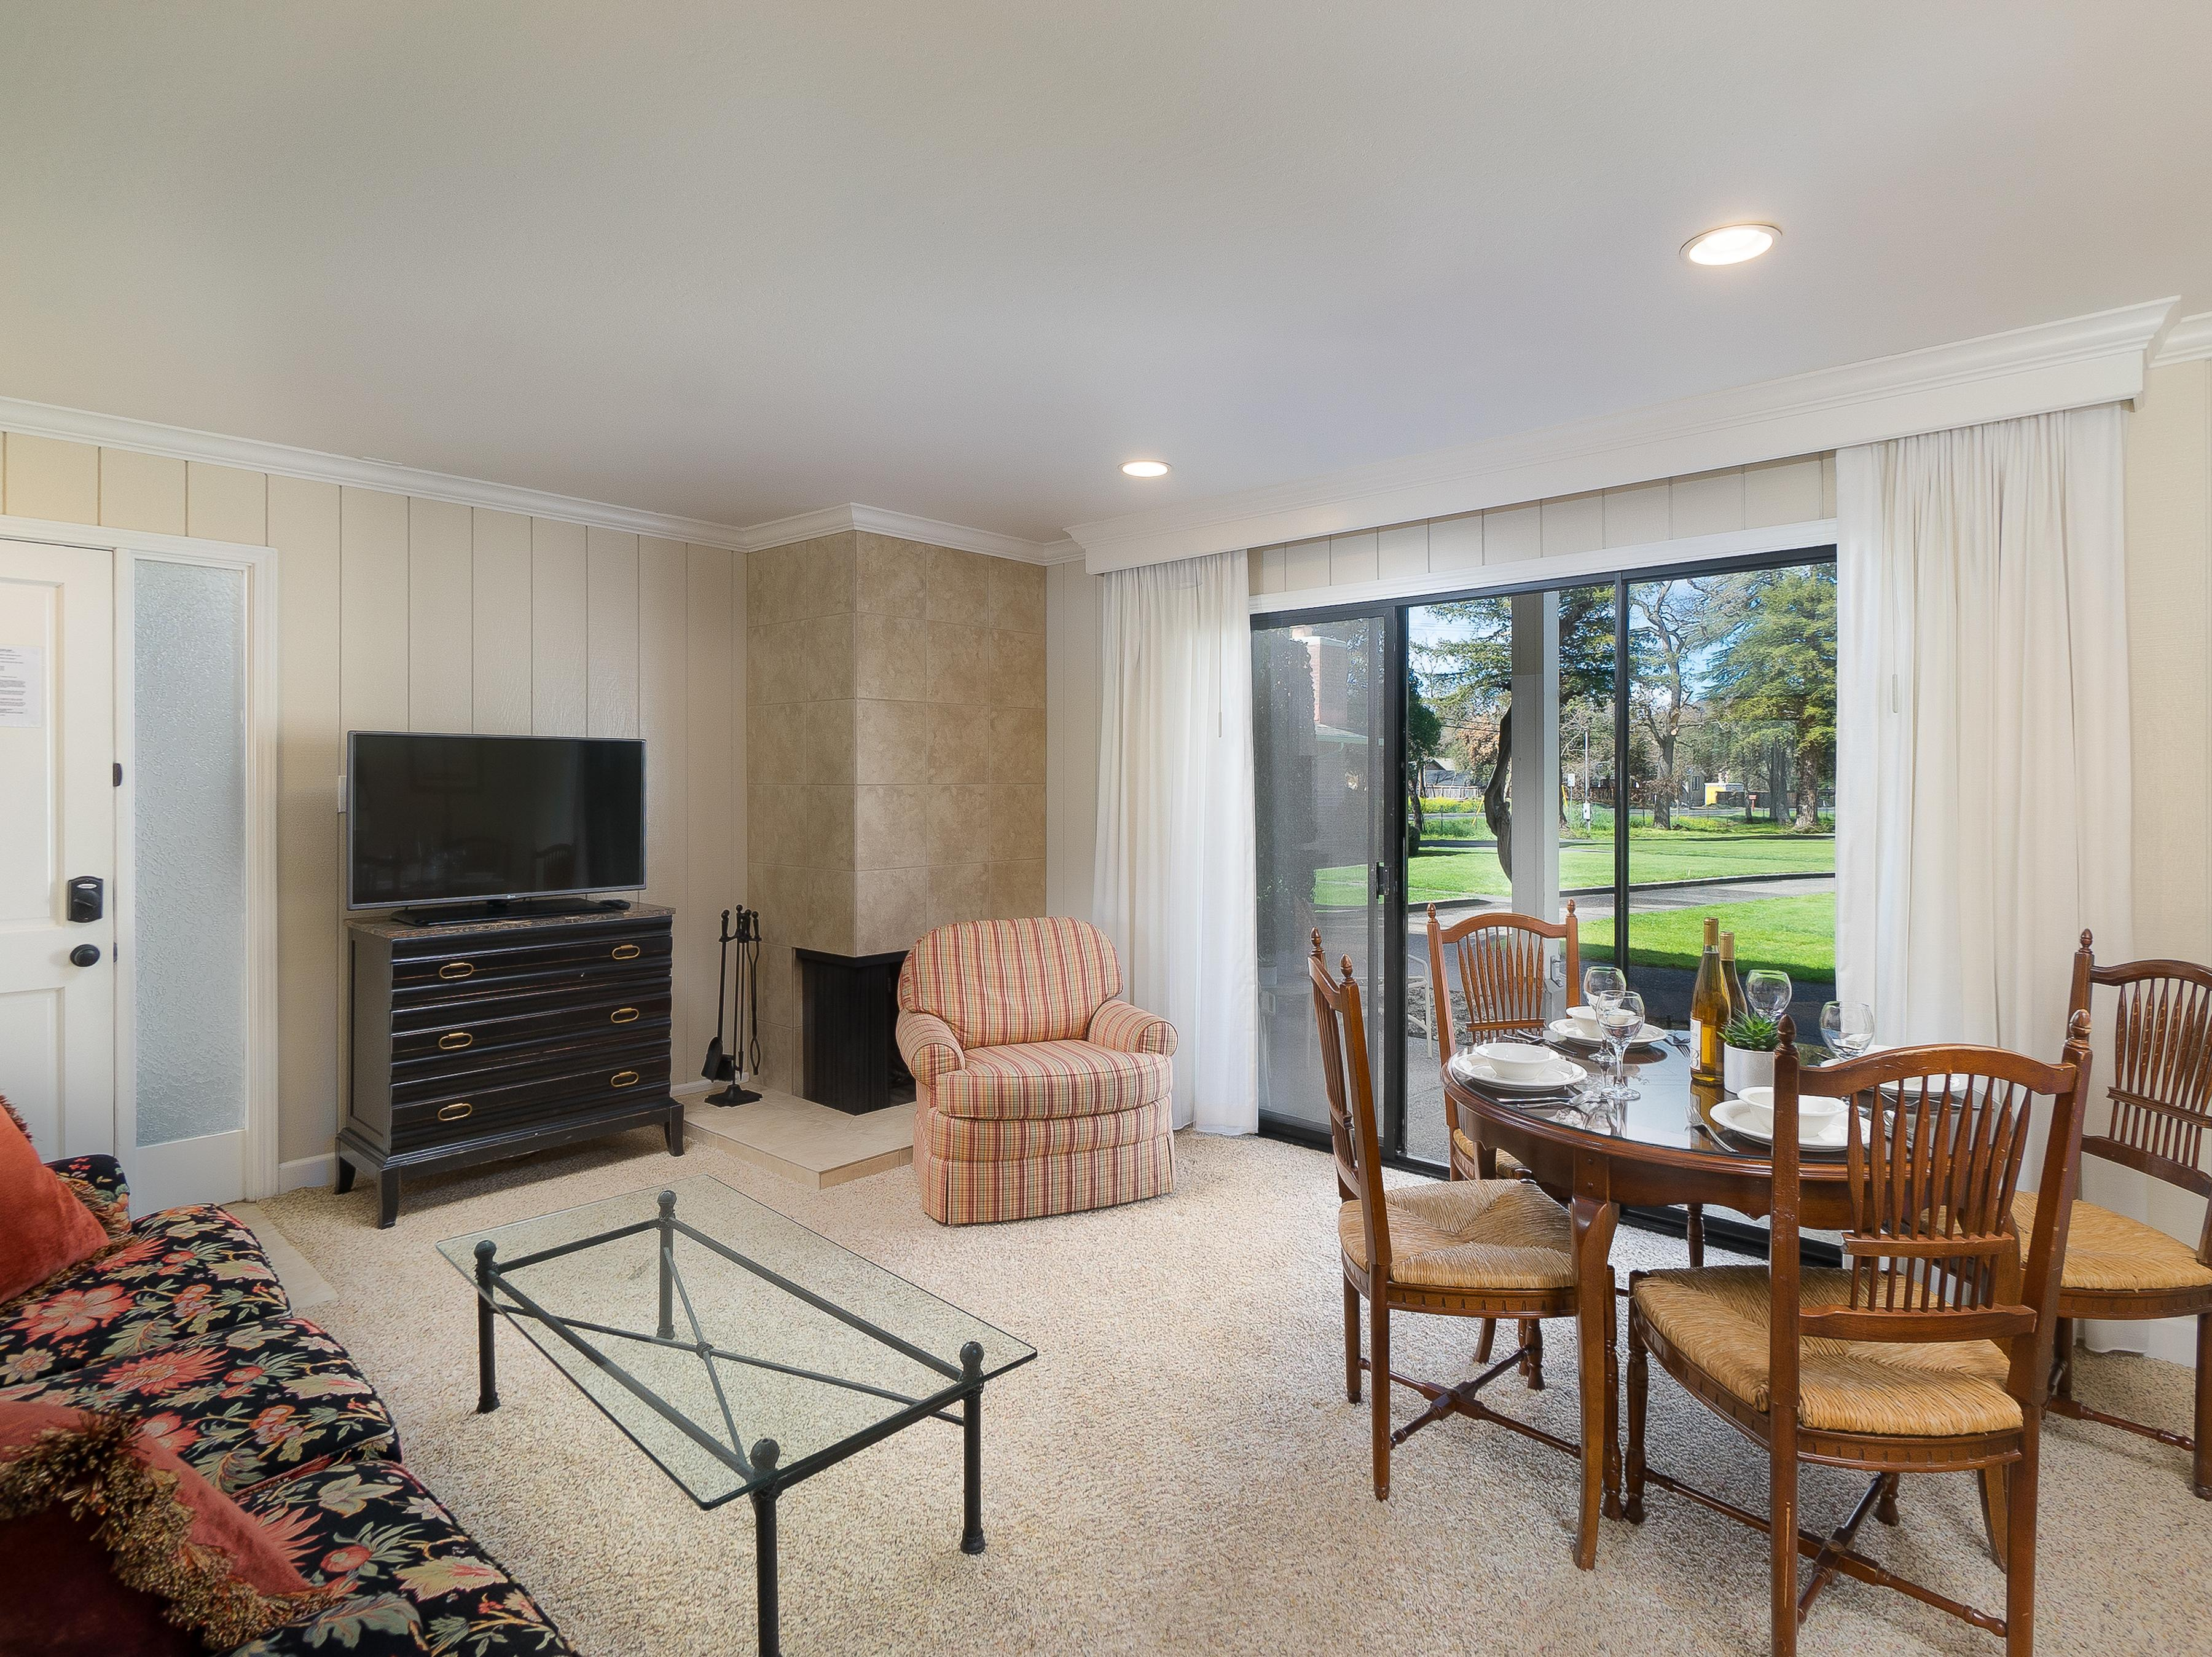 Welcome to Napa Valley! These 2 adjoining condos are professionally managed by TurnKey Vacation Rentals.